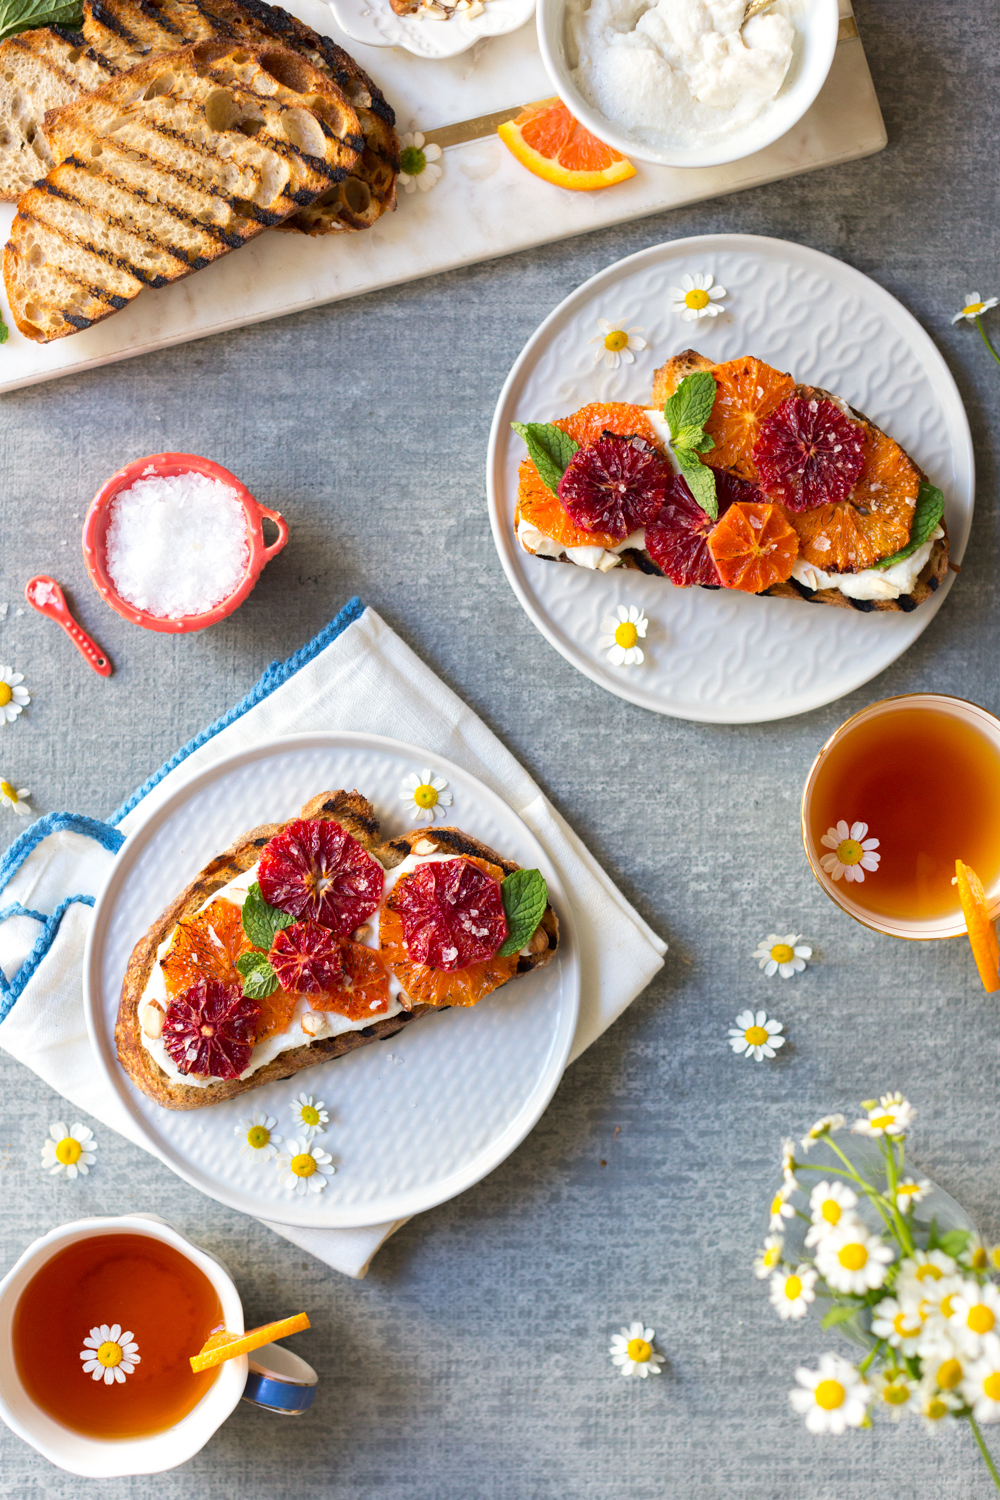 Broiled Orange Whipped Ricotta Toasts with tea